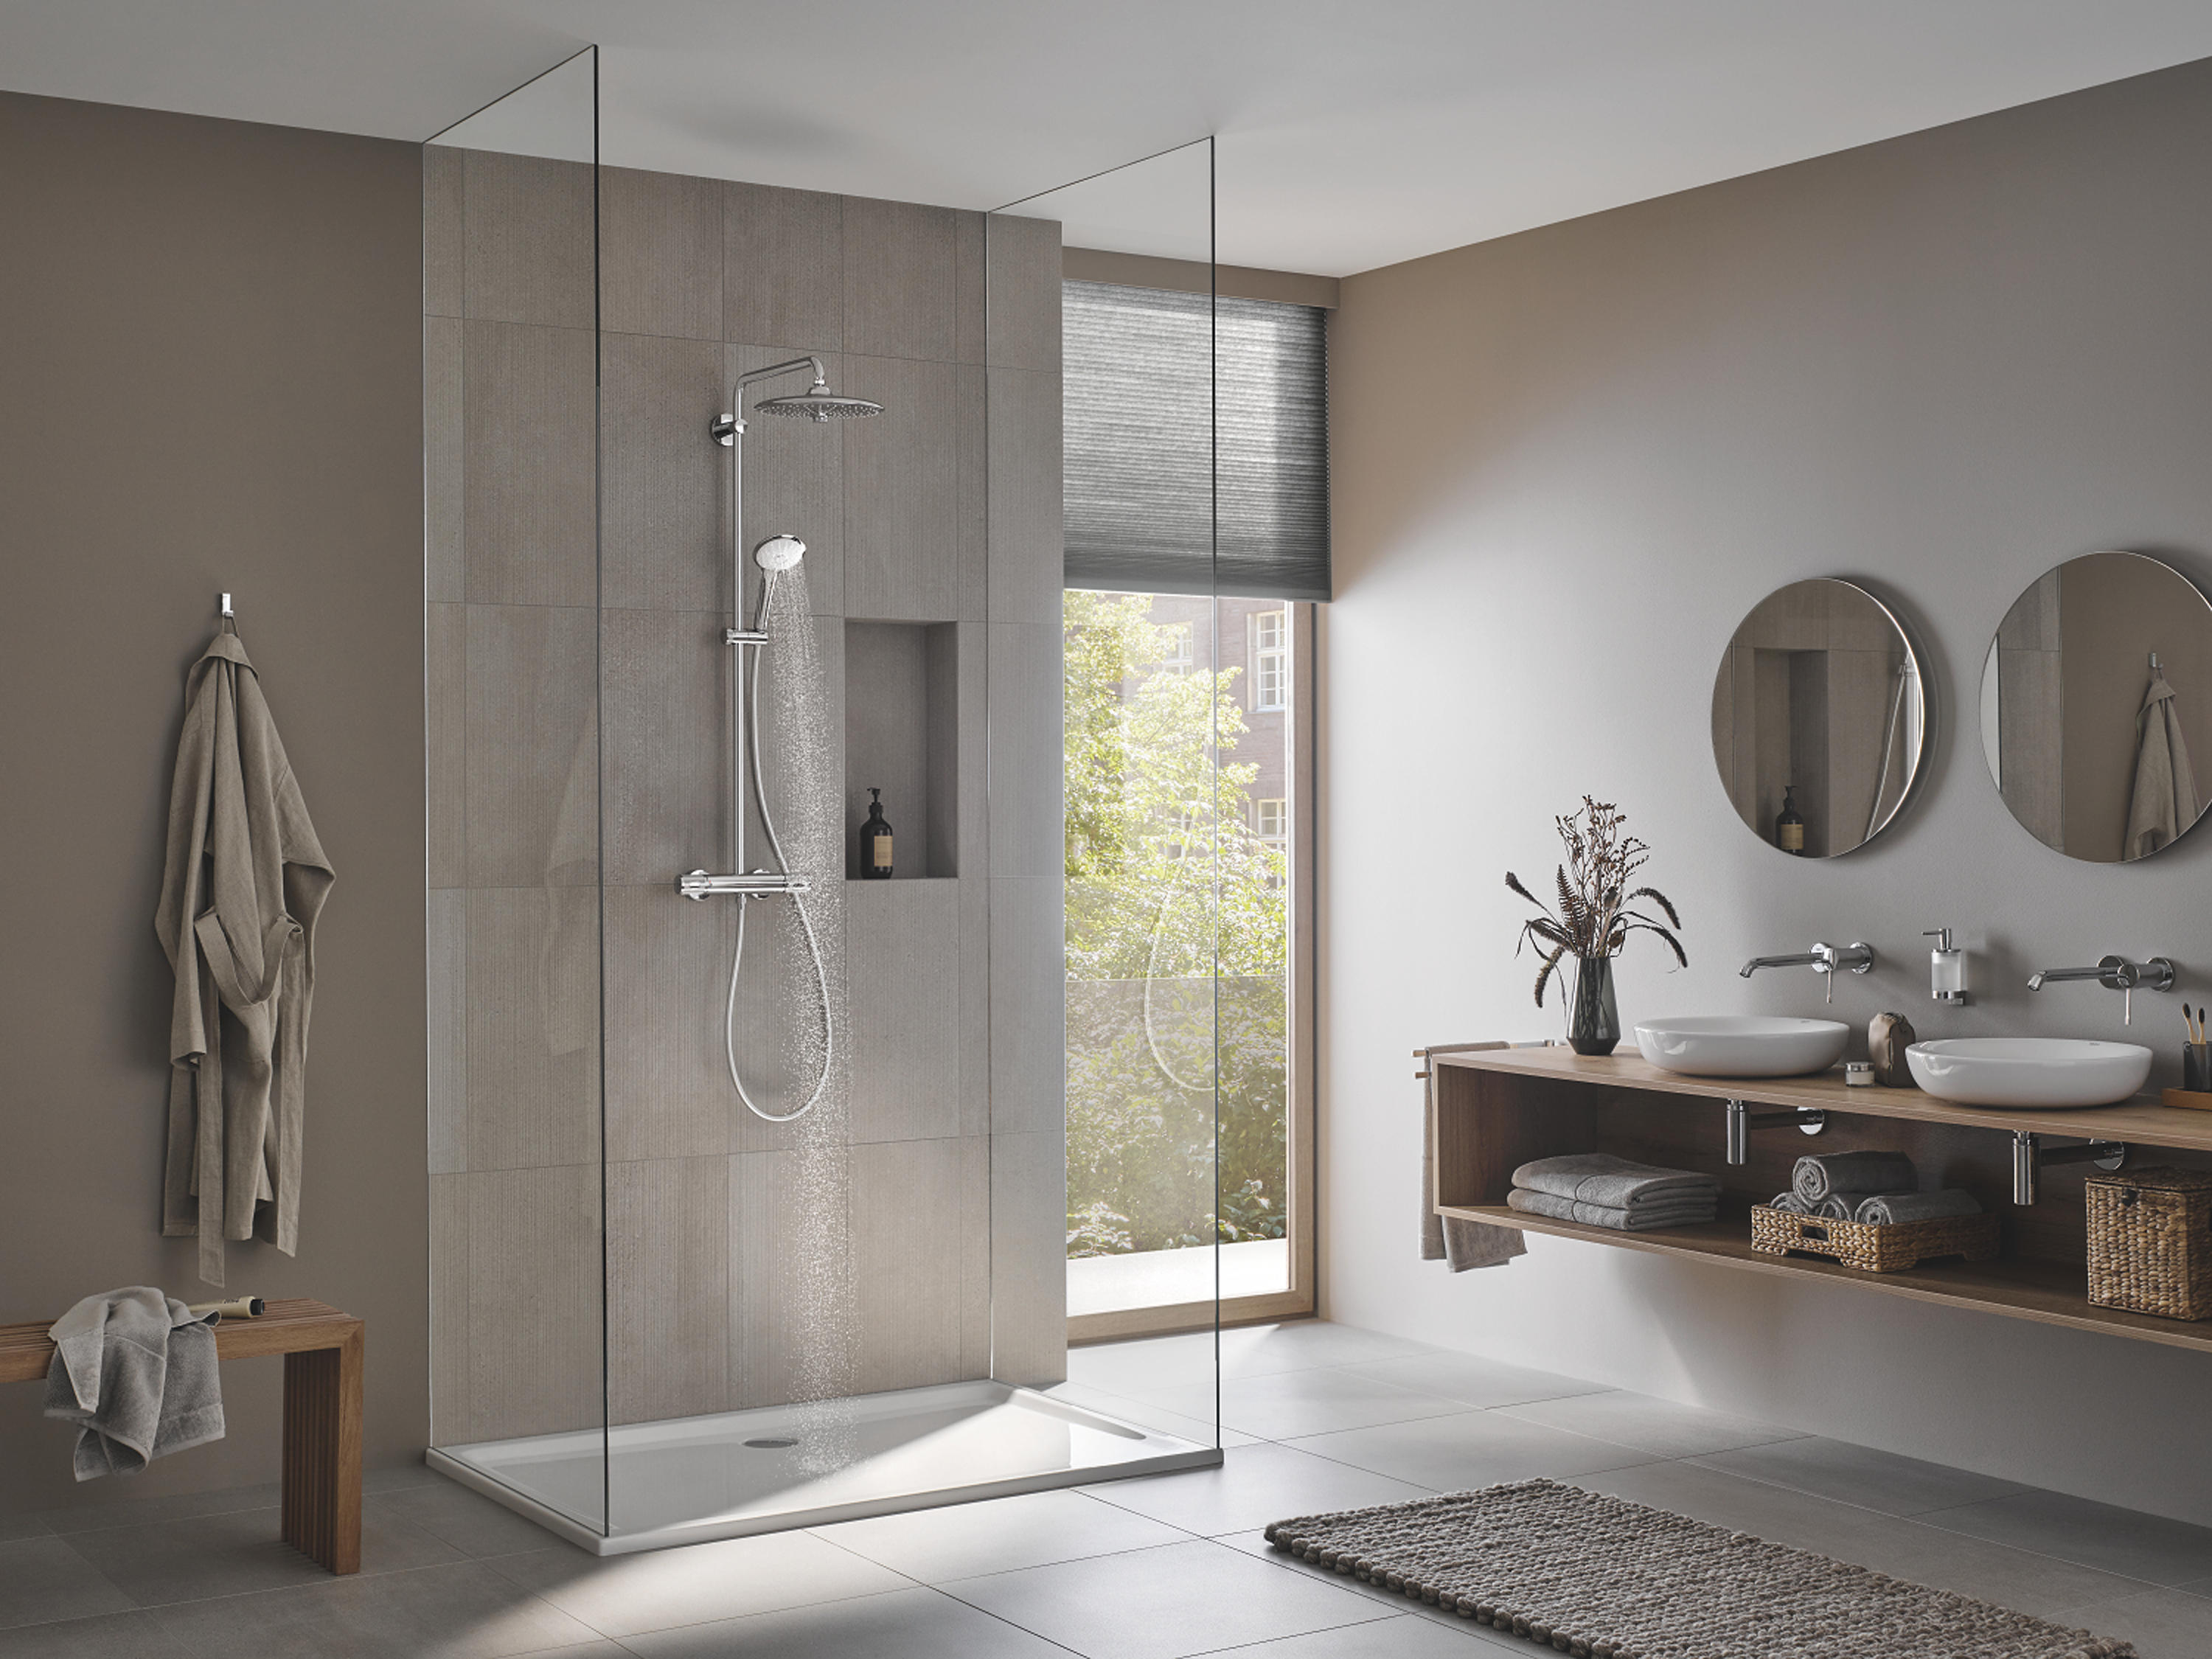 https www architonic com de product grohe euphoria smartcontrol system 310 duo duschsystem mit thermostatbatterie fuer die wandmontage 1571263